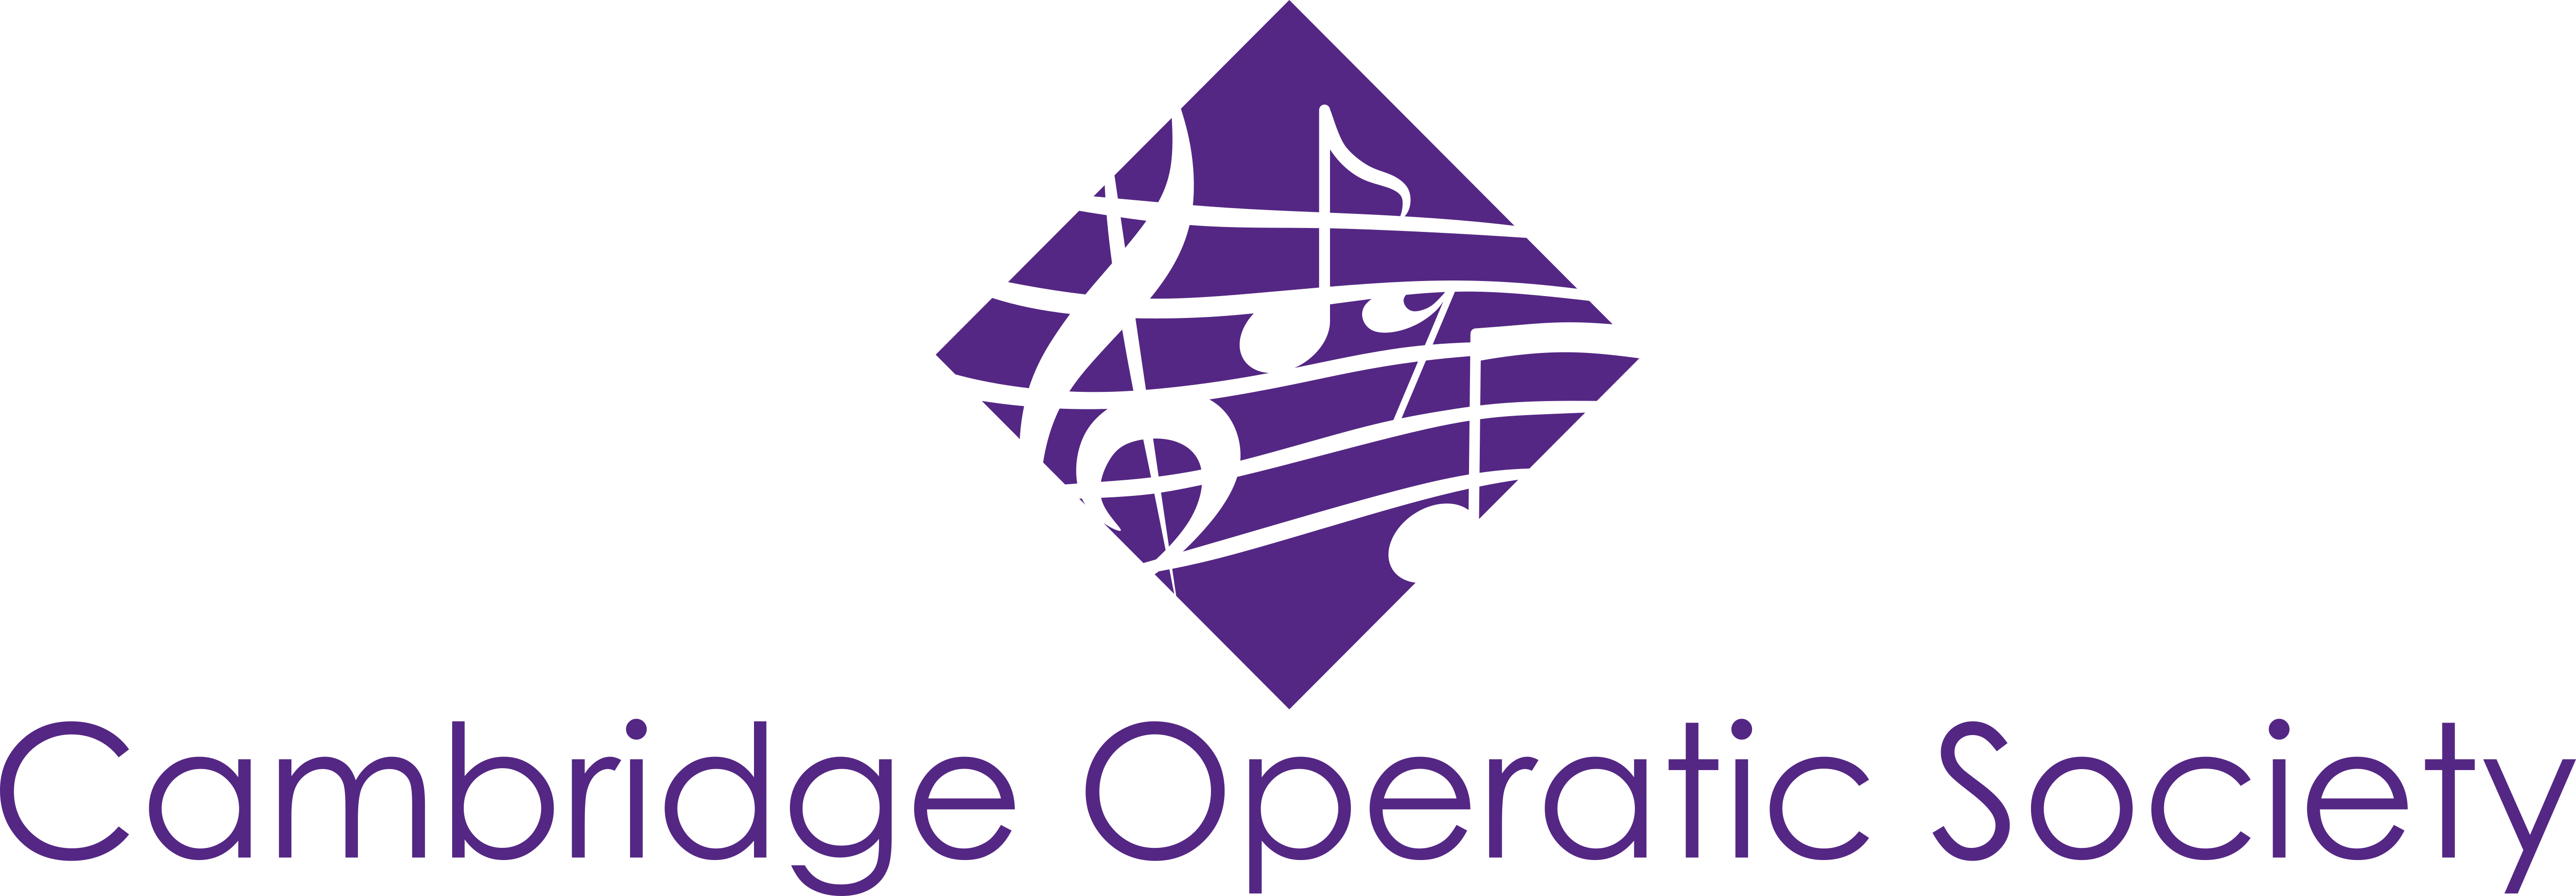 Cambridge Operatic Society